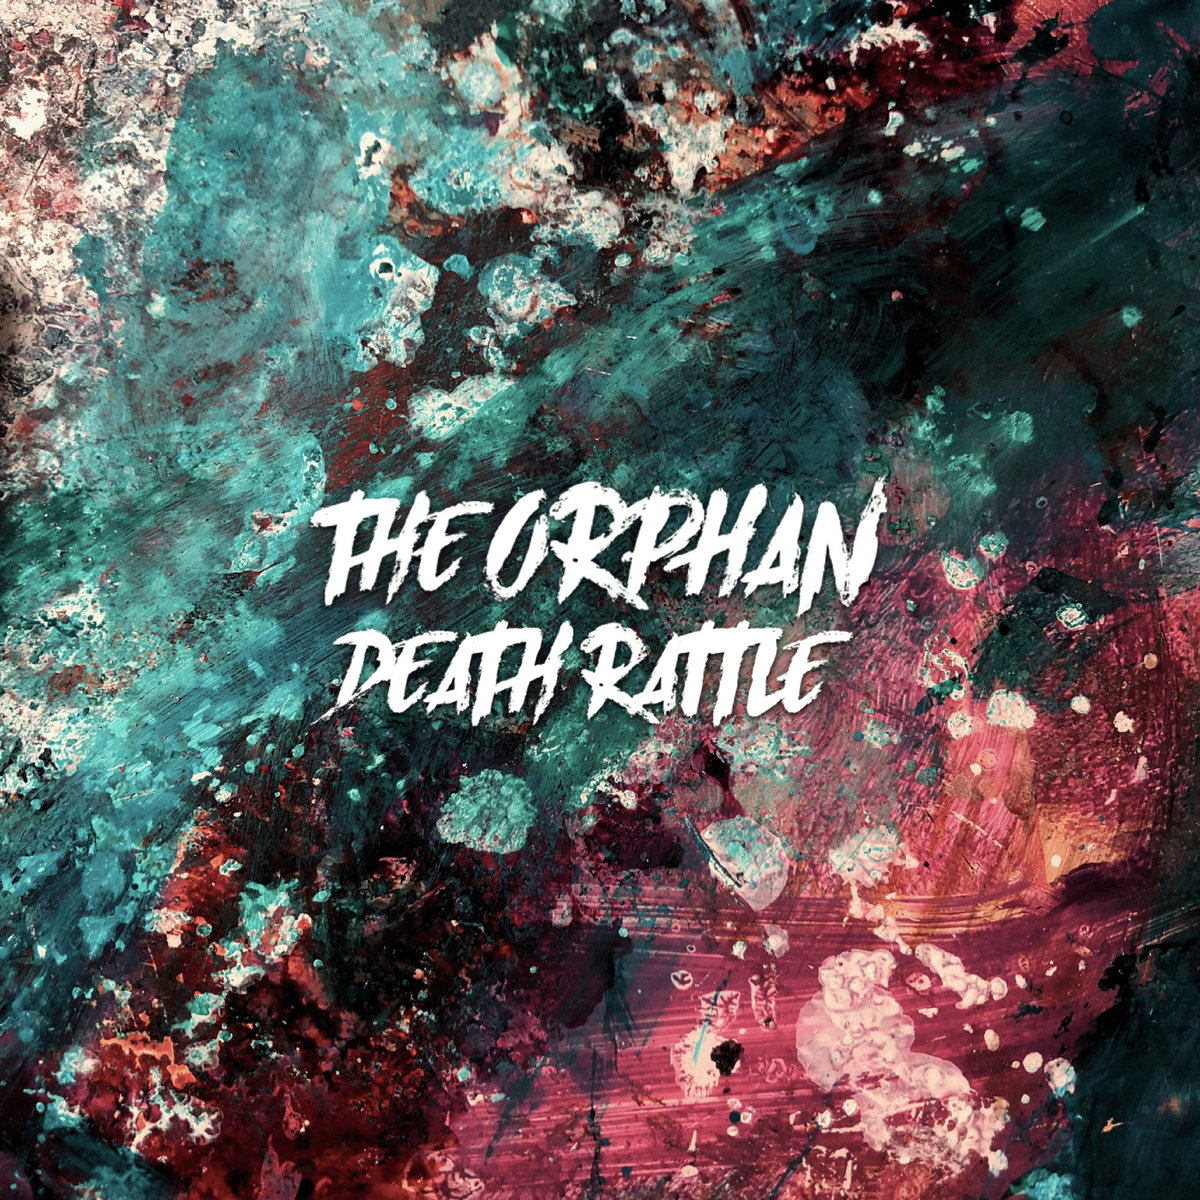 https://theorphannoise.bandcamp.com/album/death-rattle